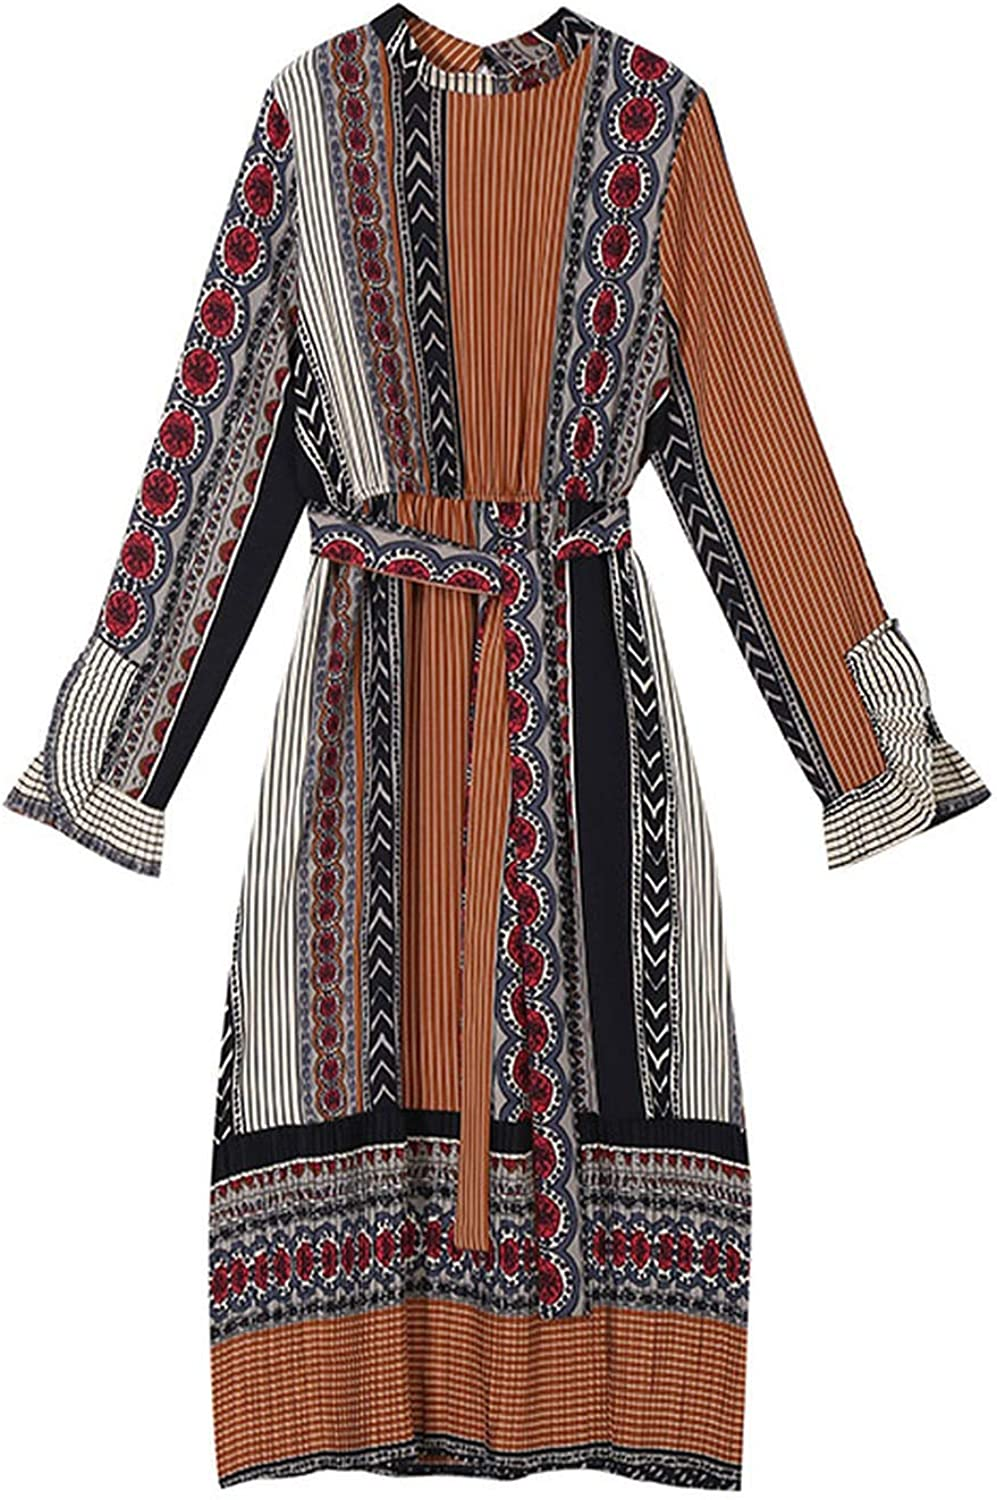 AllAboutUs 2019 Women Spring Long Dress with Sashes Geometrical Pattern Printed Long Sleeve